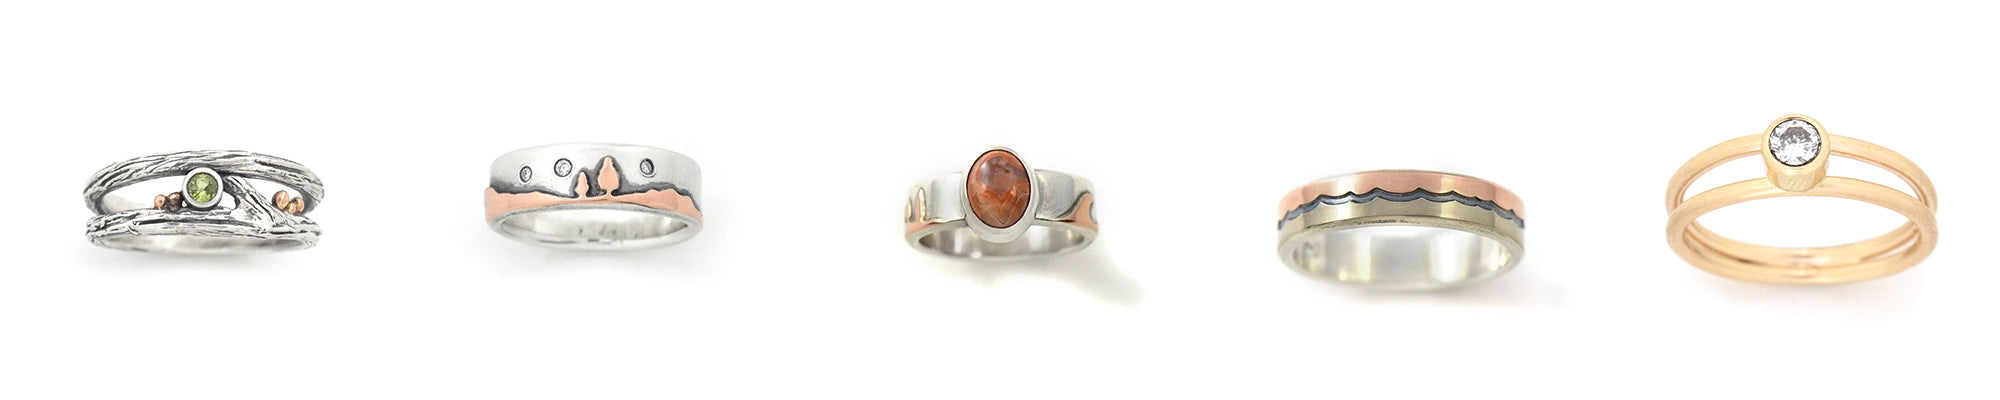 Custom ring designs handcrafted by Beth Millner Jewelry